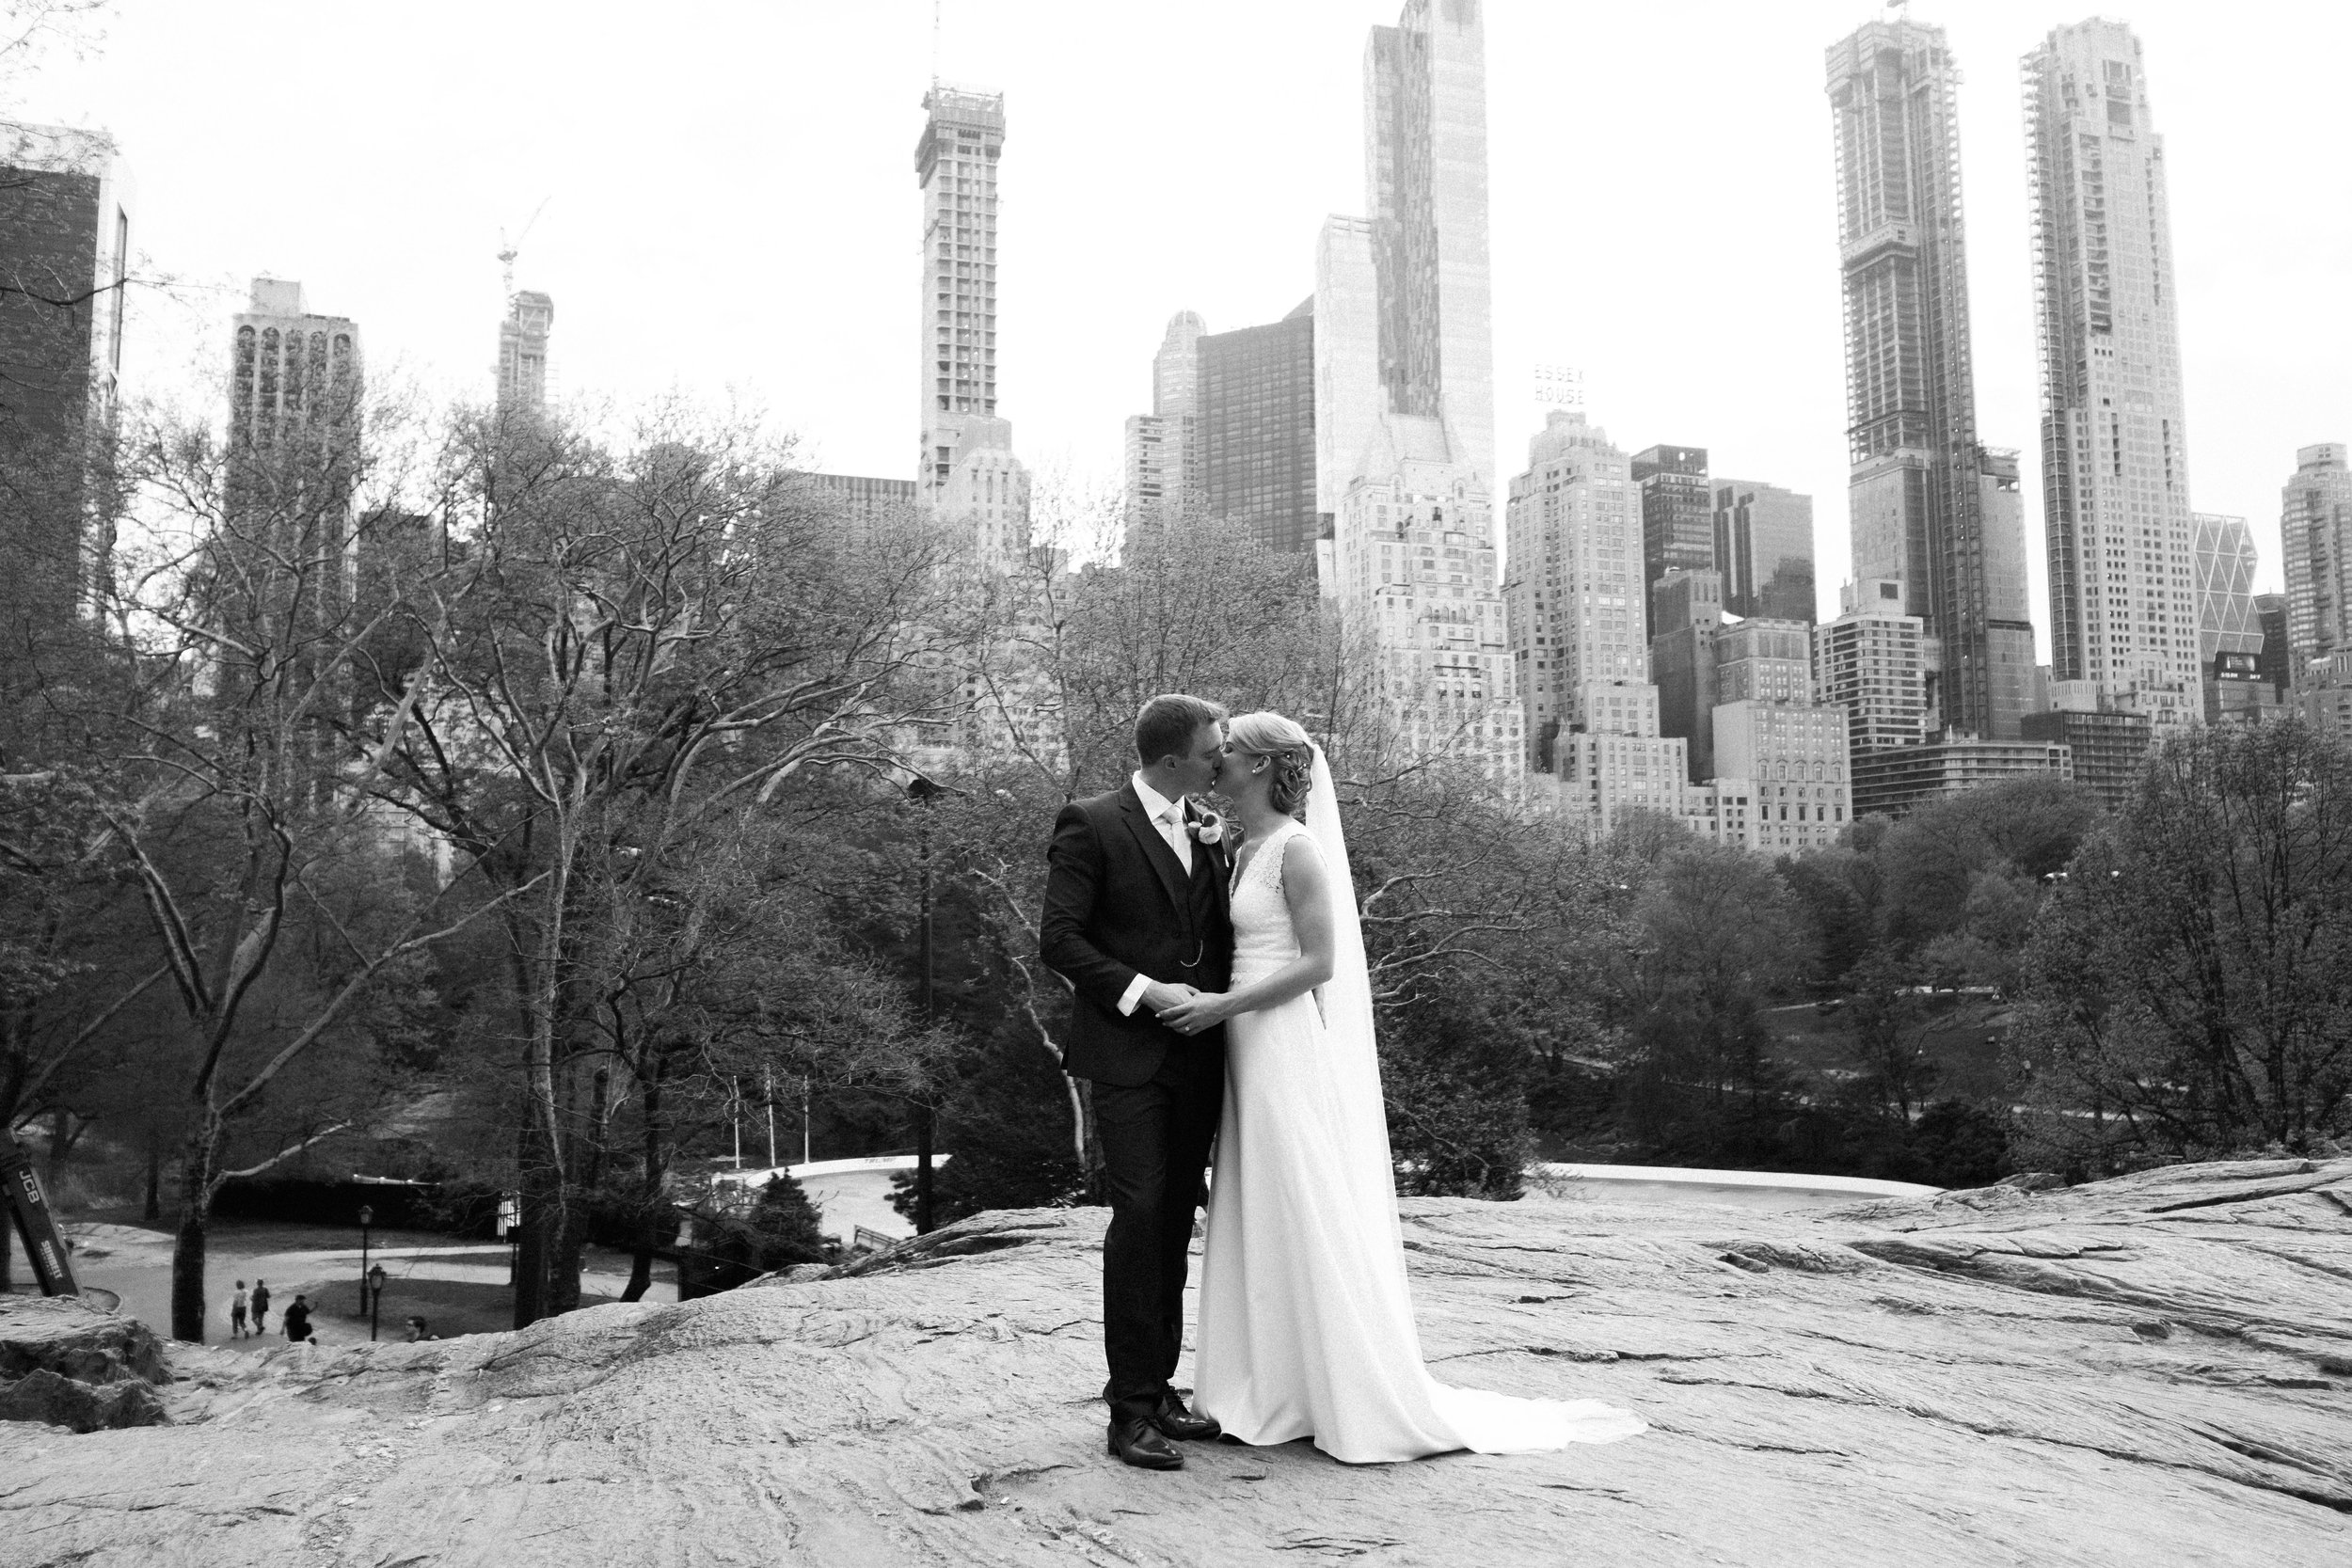 Bride and groom wedding in Central Park